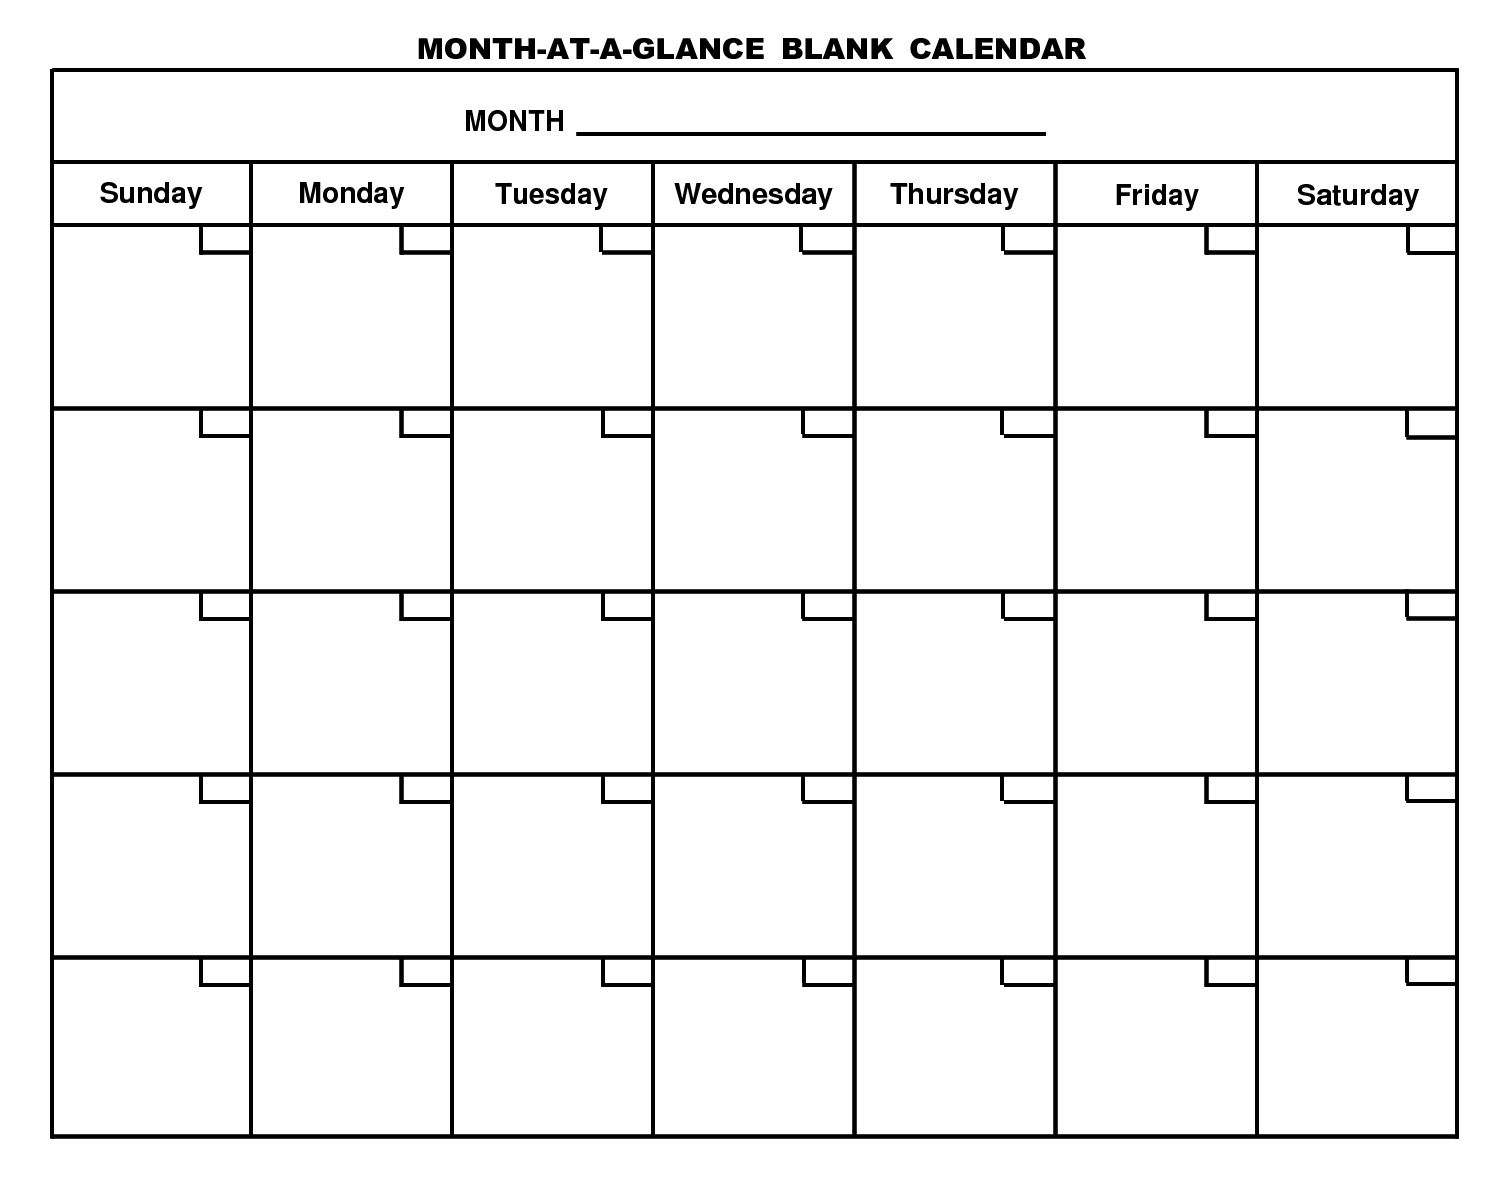 Blank 30 Day Calendar Printable | Isacl-Blank Template For 30 Days